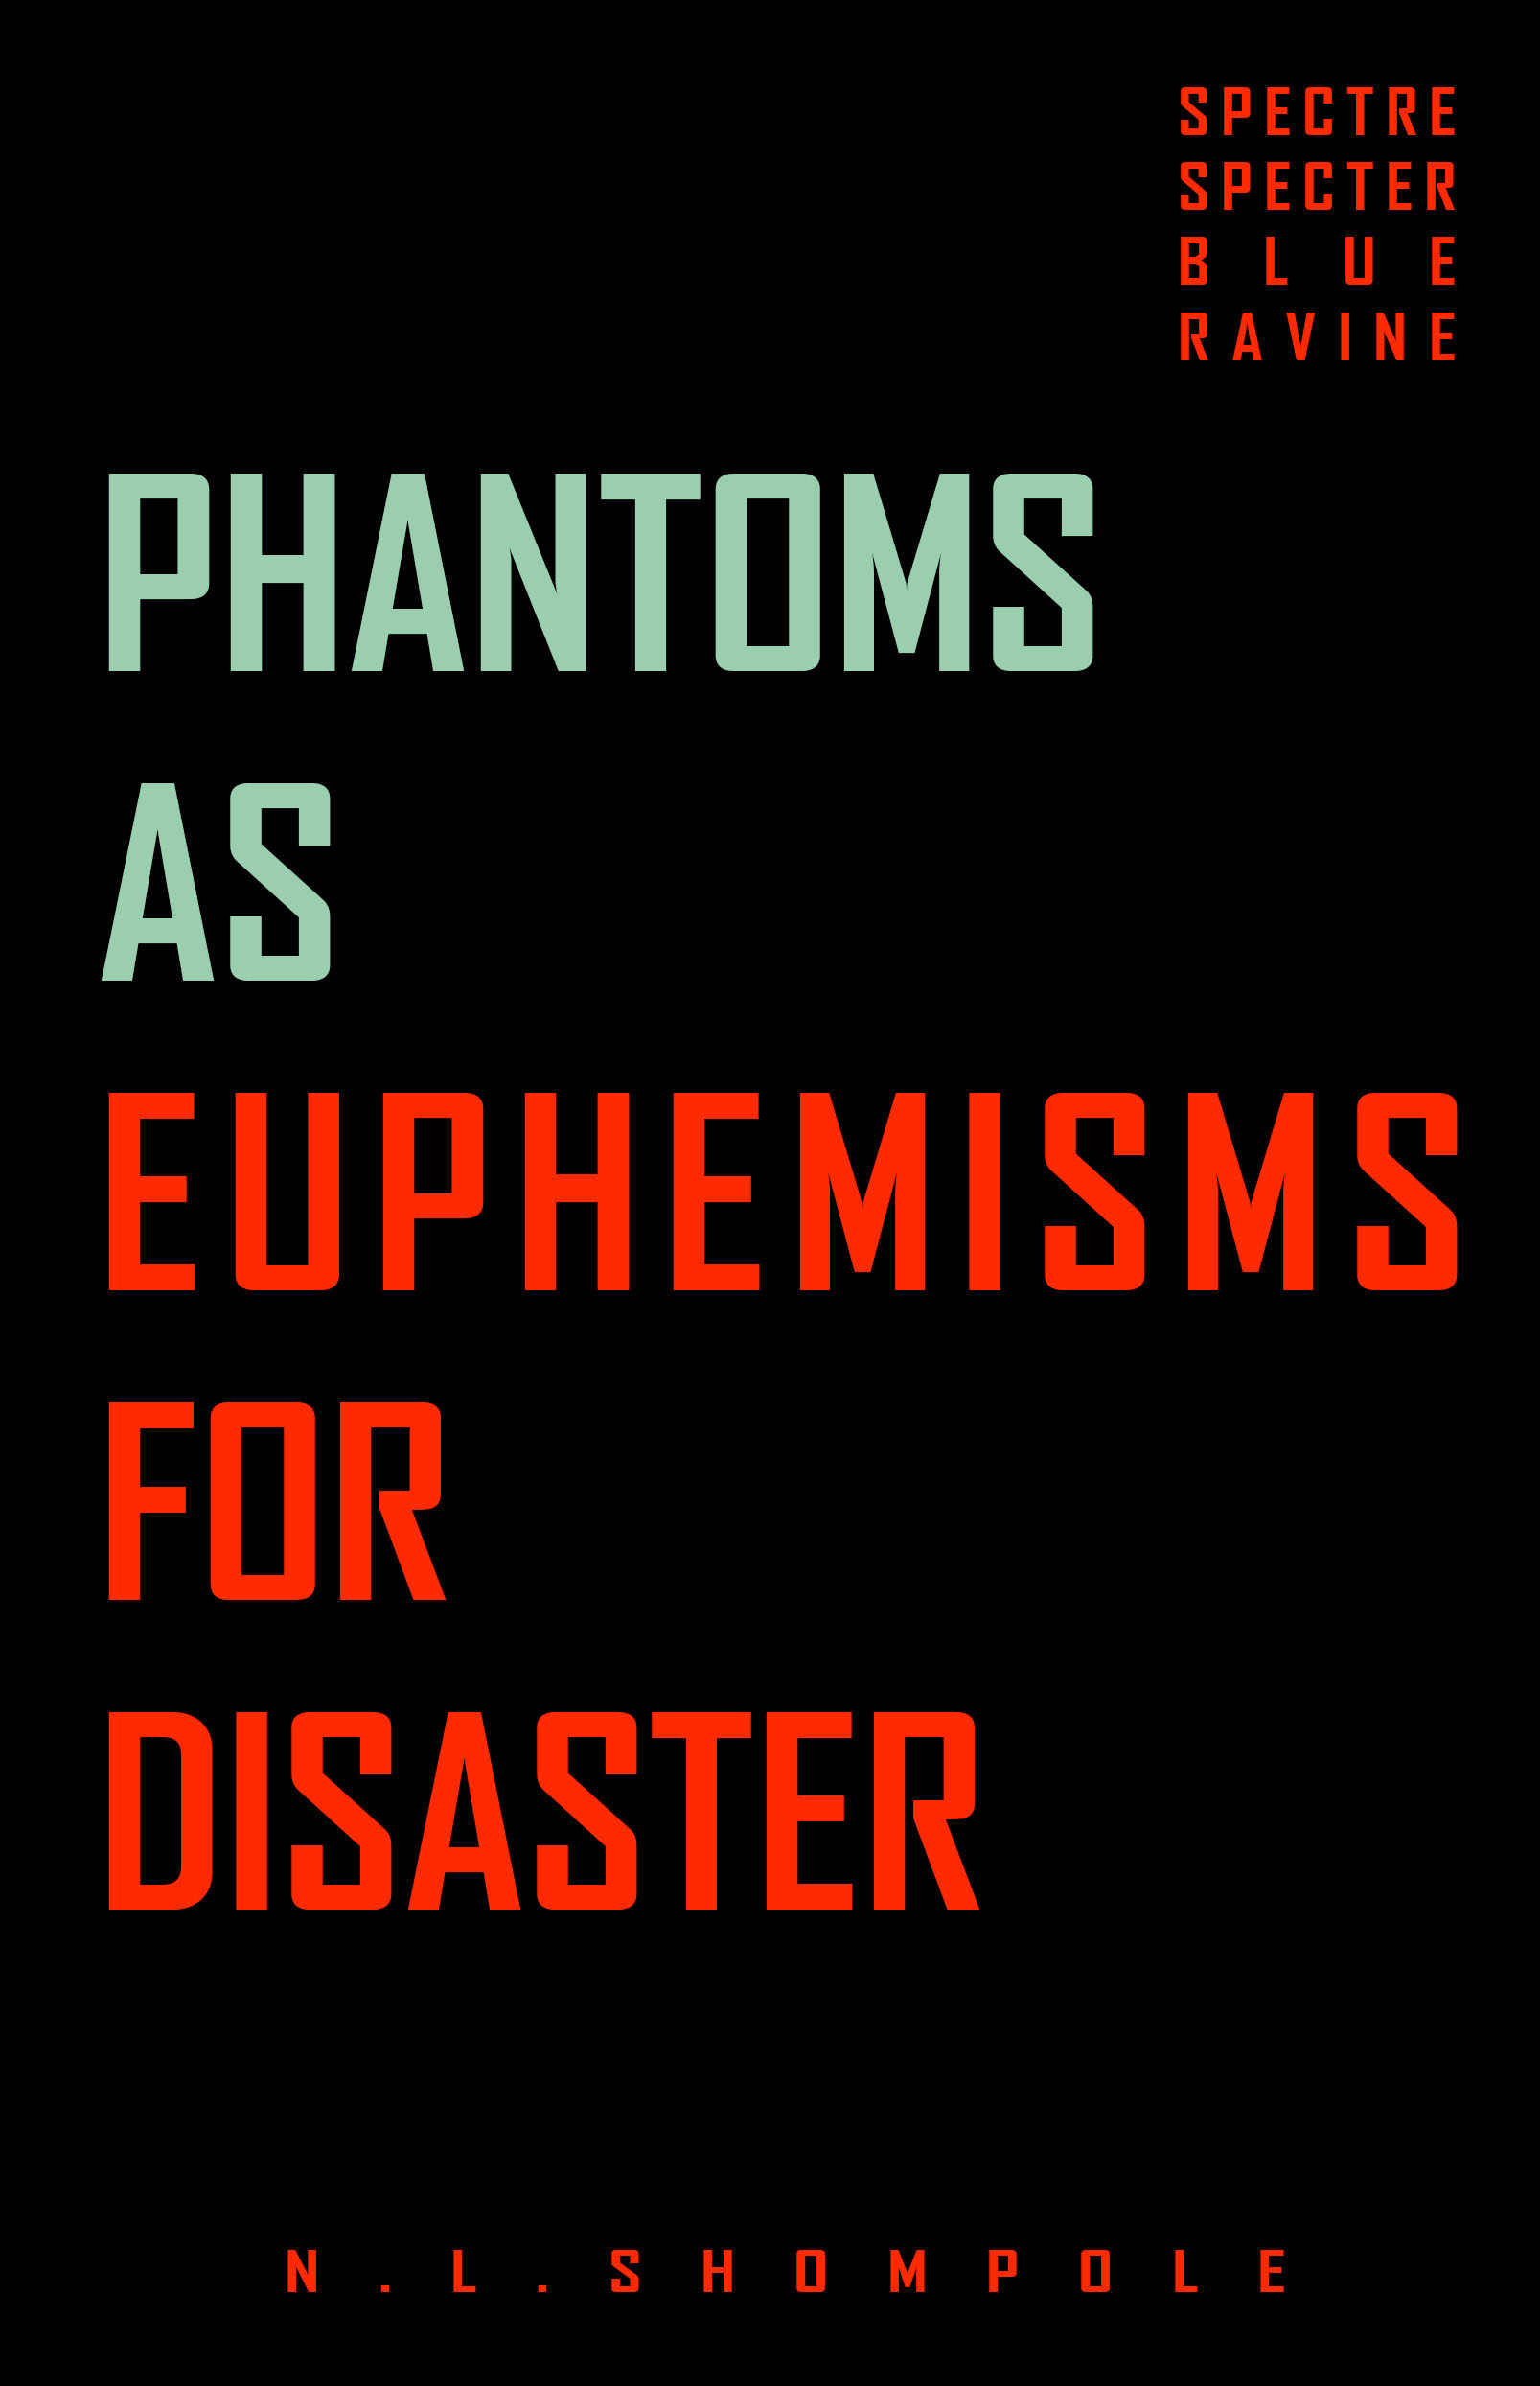 POETRY PHANTOMS AS EUPHEMISMS FOR DISASTER  N.L. SHOMPOLE   As a collection of poetry and prose,  Phantoms as Euphemisms for Disaster  explores the many faces of loss. Not only the loss of love, but loss of language, culture, identity and self. The book seamlessly navigates the silences between harrowing conversations, to realizations about growing up, about grief and how to deal with loss, to the reawakening of tenderness, hope and awareness in the innate power of self. This is a fantastic collection for anyone who appreciates a unique voice, beautiful language and the ache and sweetness that is living.   AVAILABLE FORMATS:    EBOOK    |    PAPERBACK